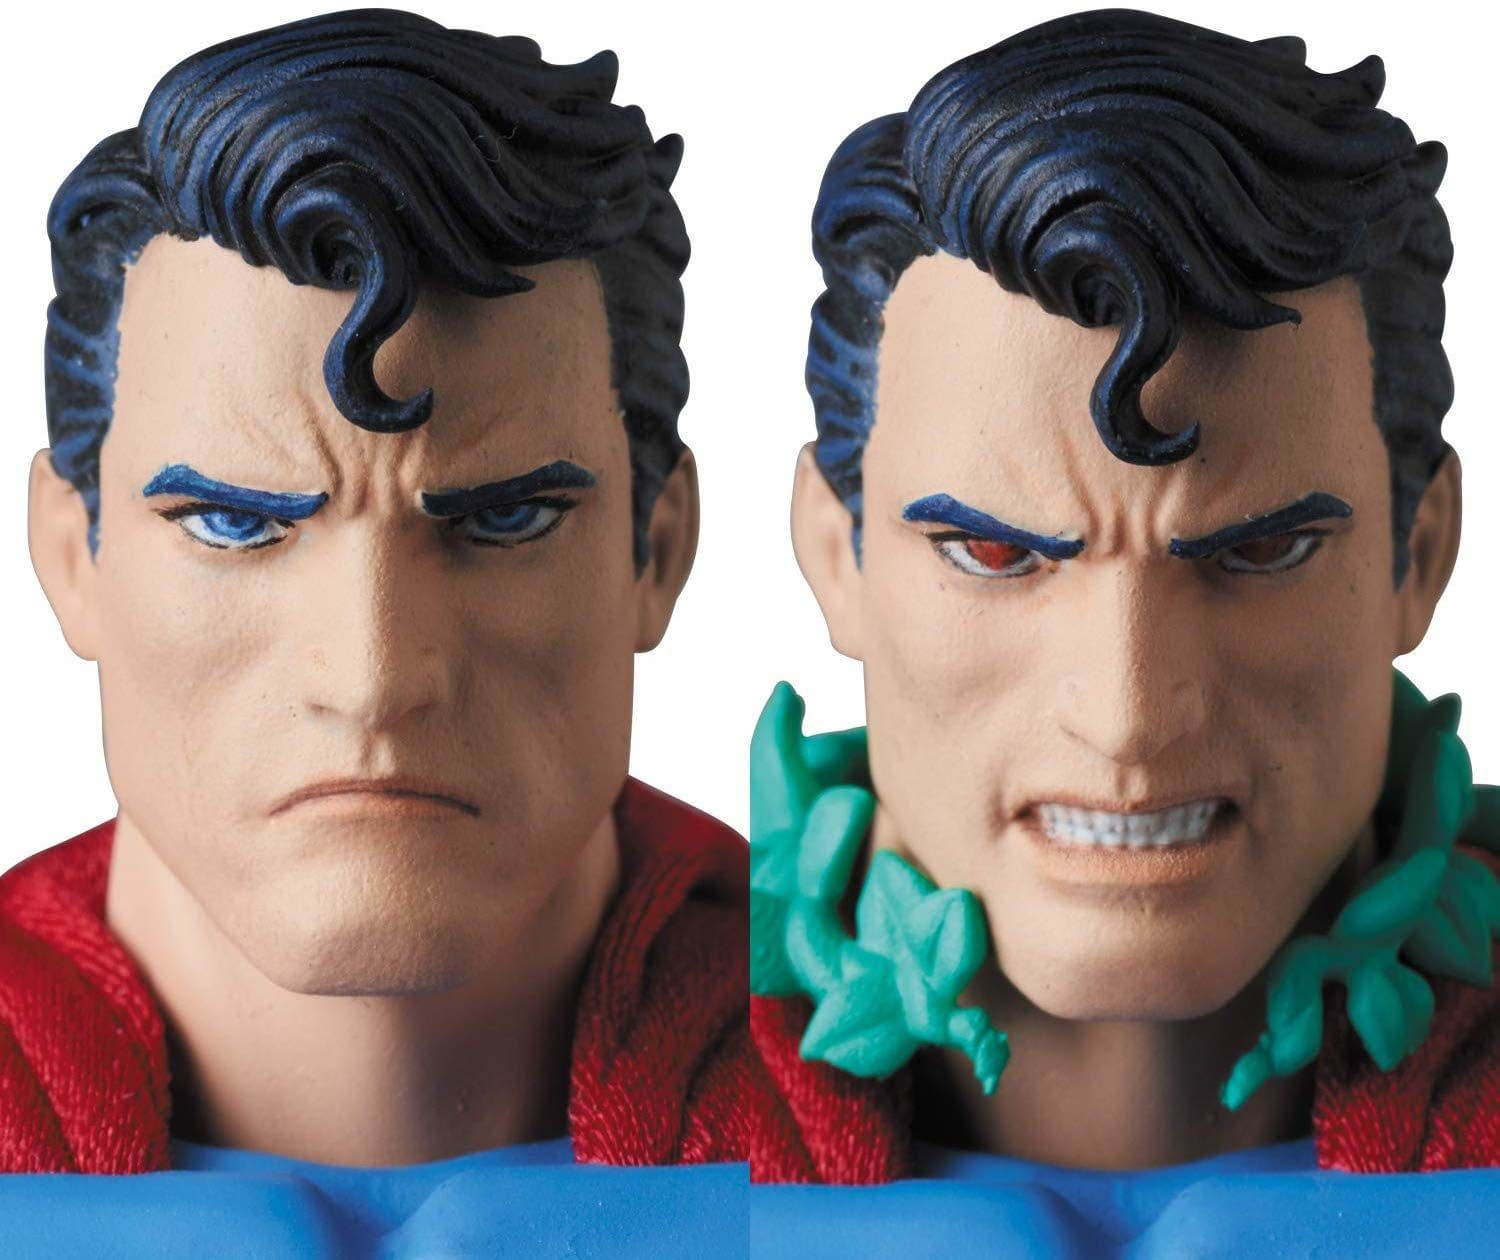 Superman Gets His Hush Appearance from Mayfex